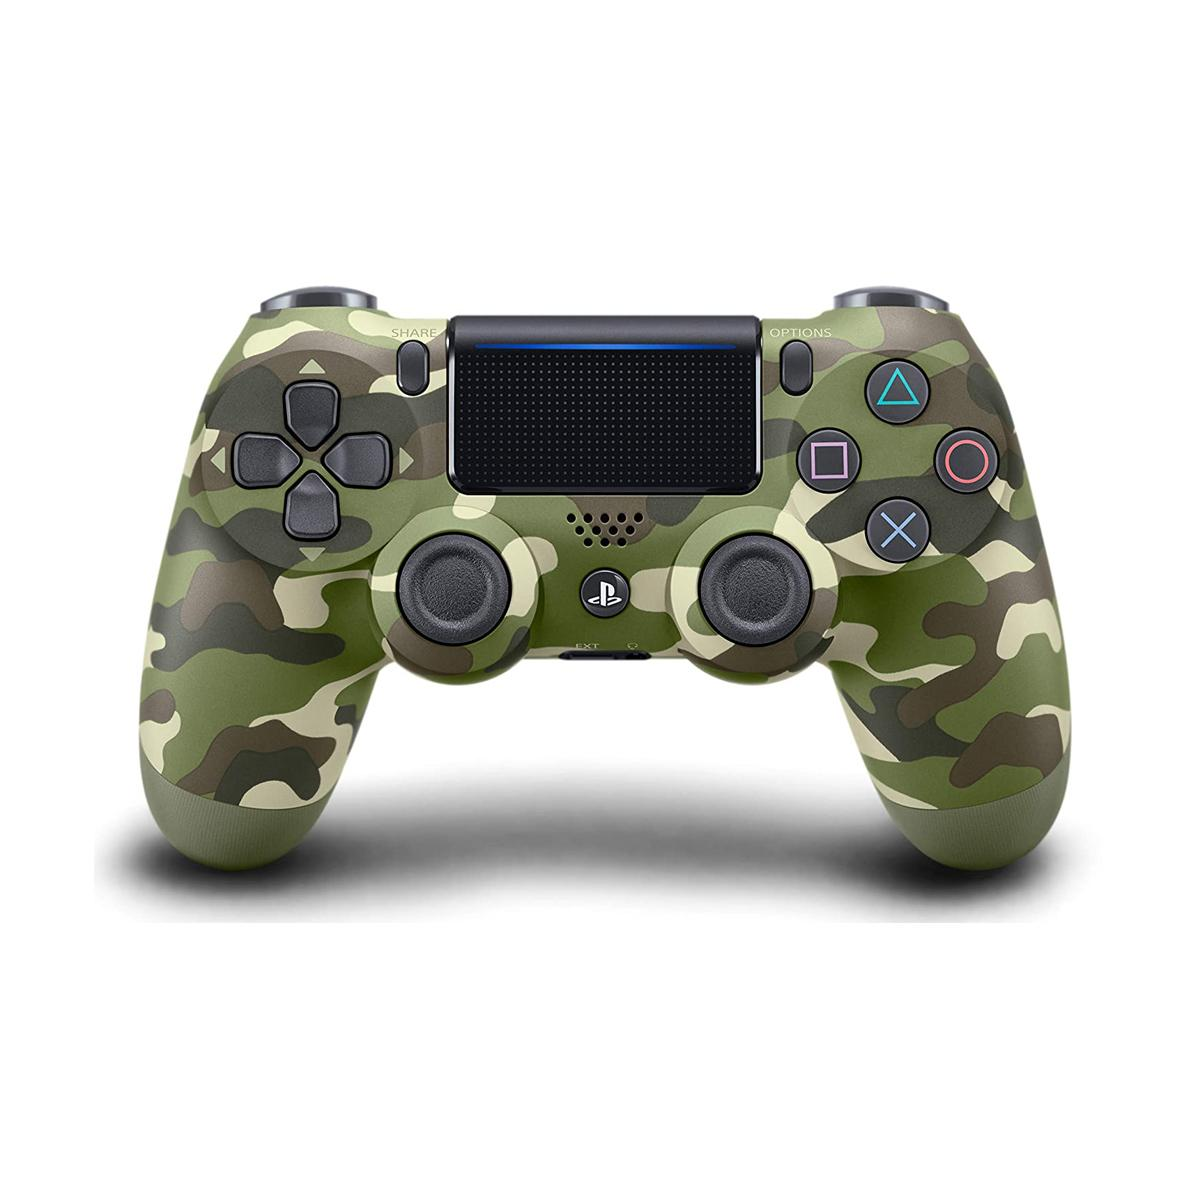 Sony PS4 Wireless Controller - Camouflage Green